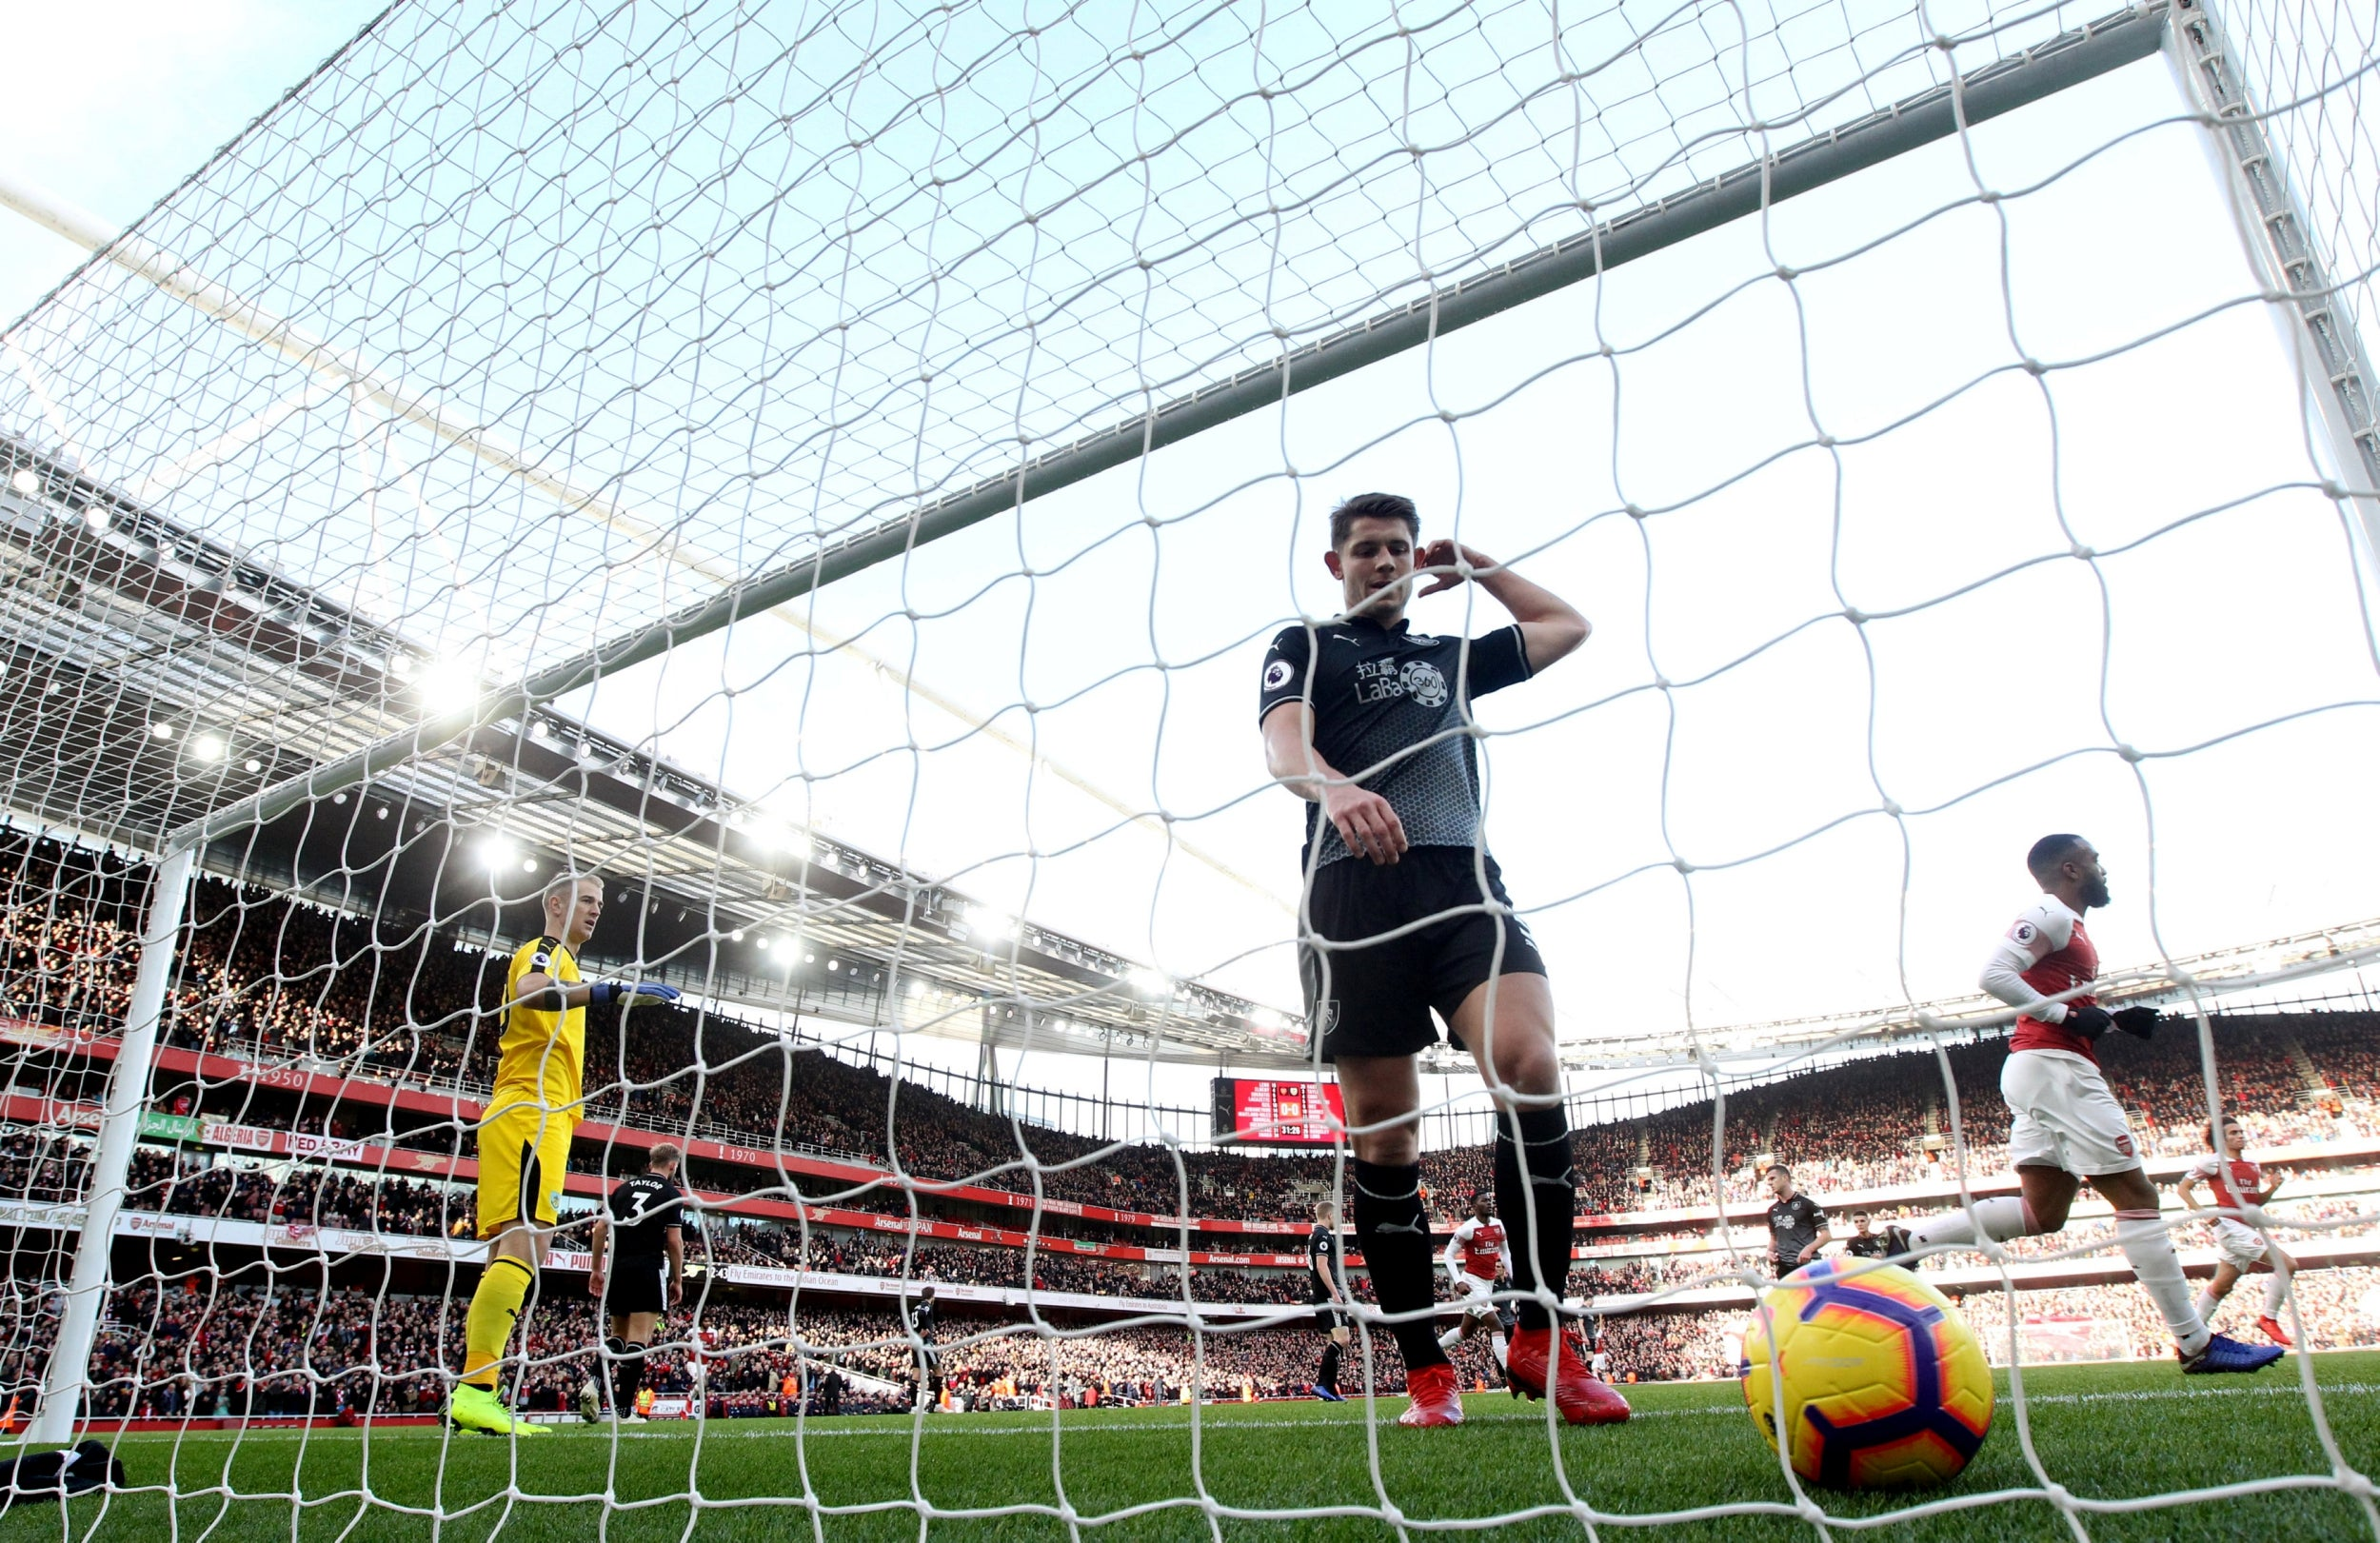 Arsenal vs Burnley: Mesut Ozil steals the show as Gunners